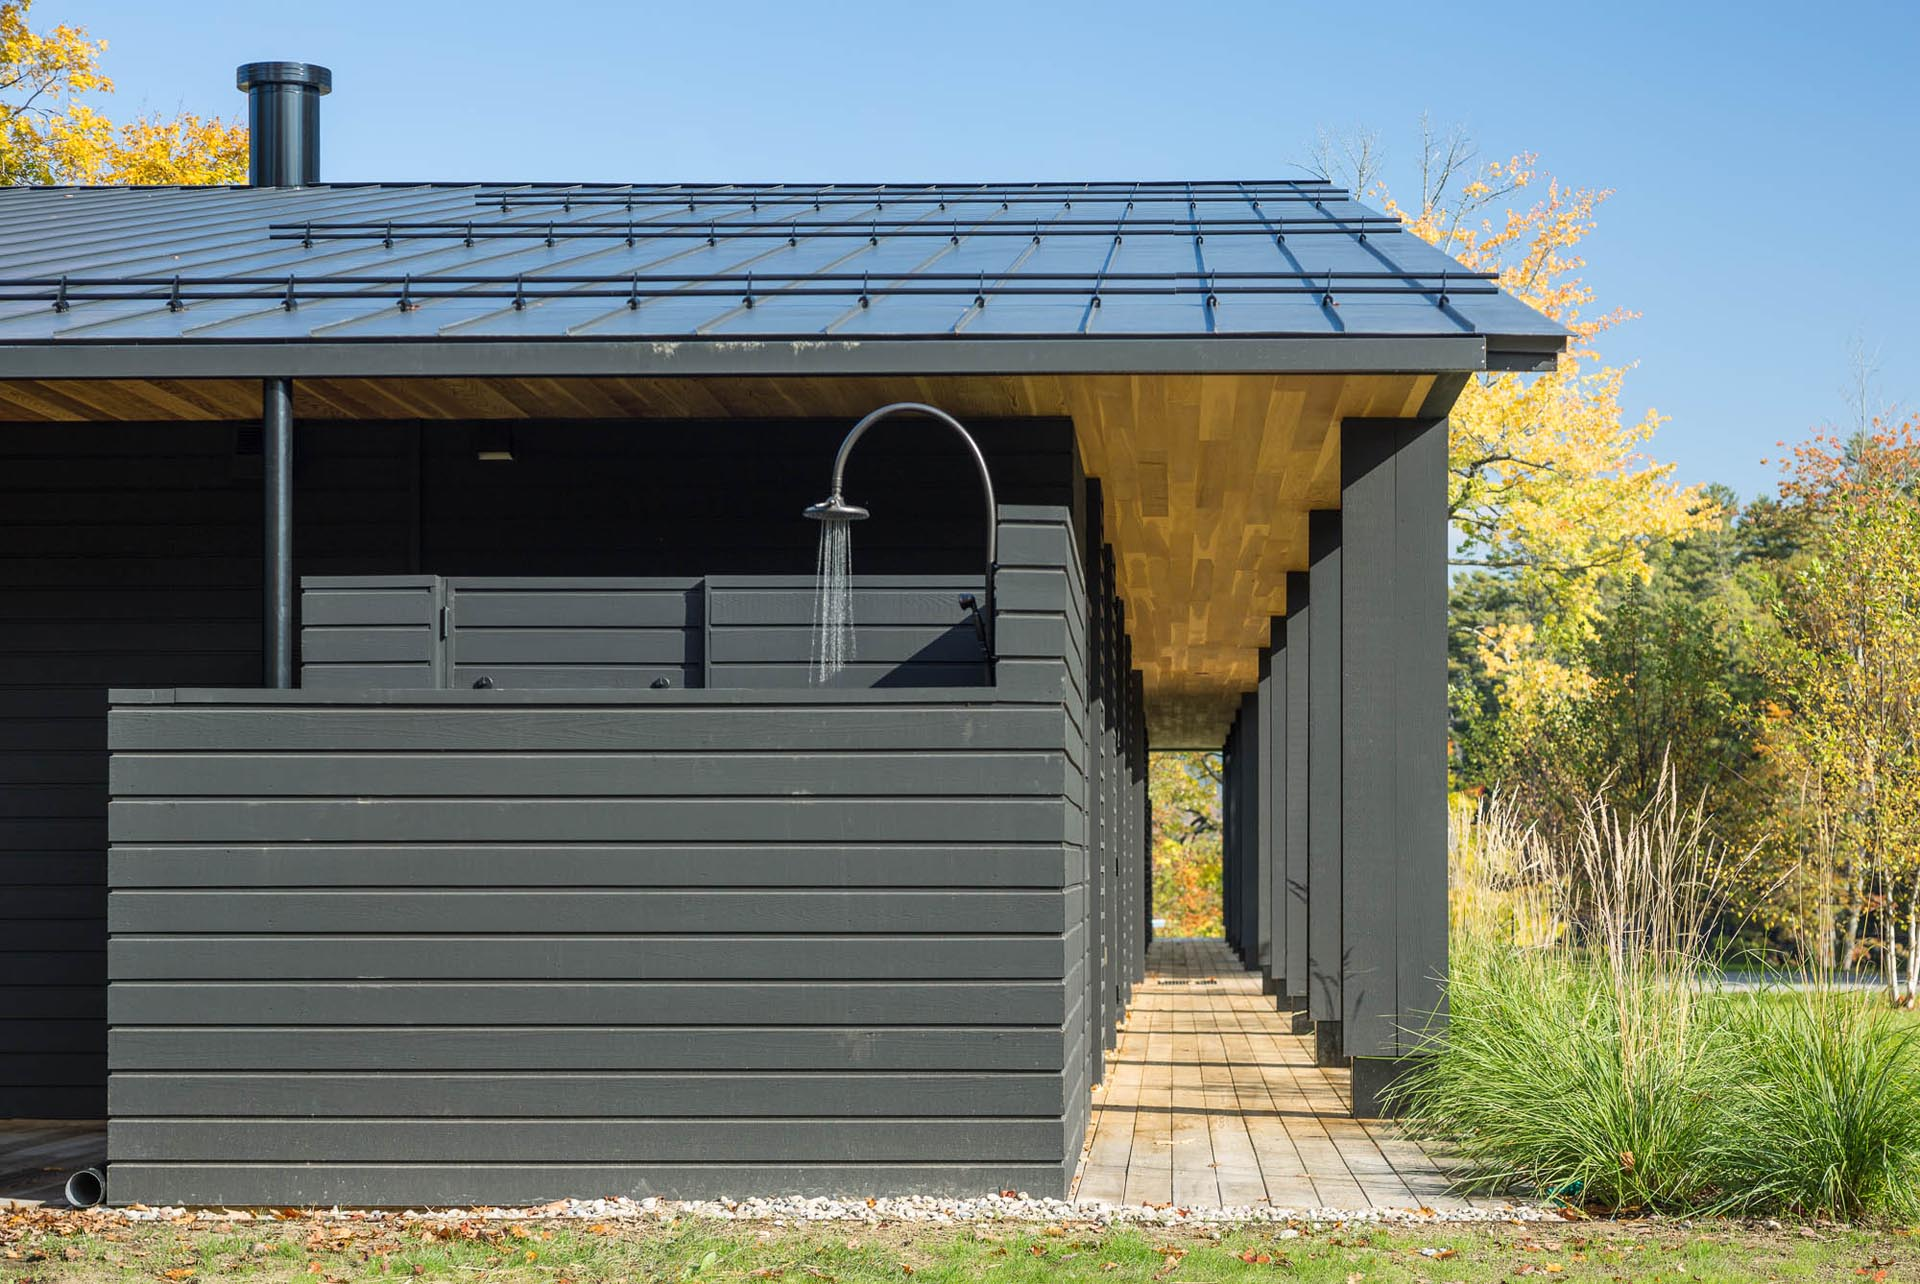 A modern house with black exterior siding, a black metal roof, and an outdoor shower.